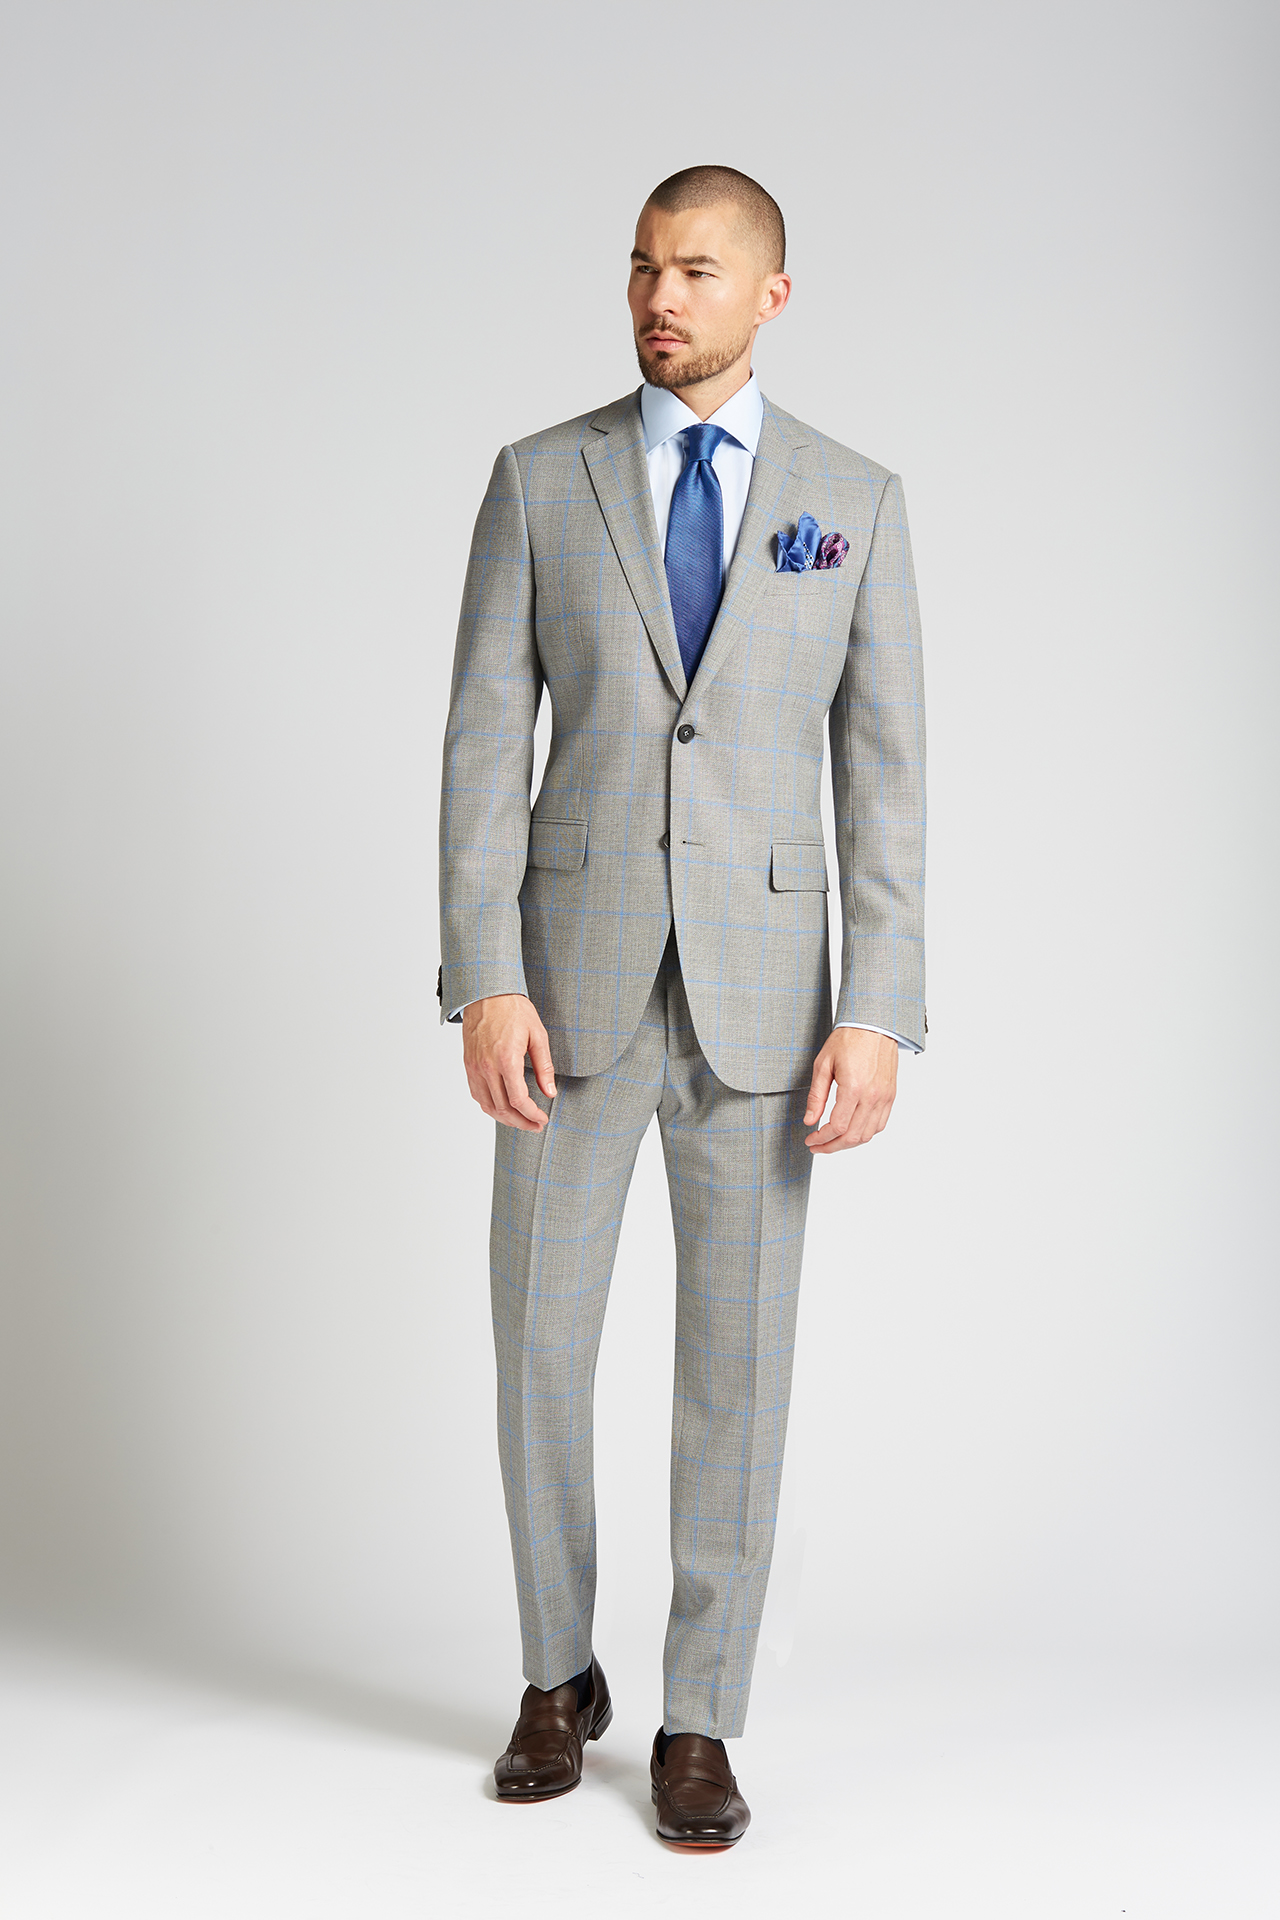 Slim-fit 4 Season Wool 2-Piece Suit in Grey with French Blue Windowpane